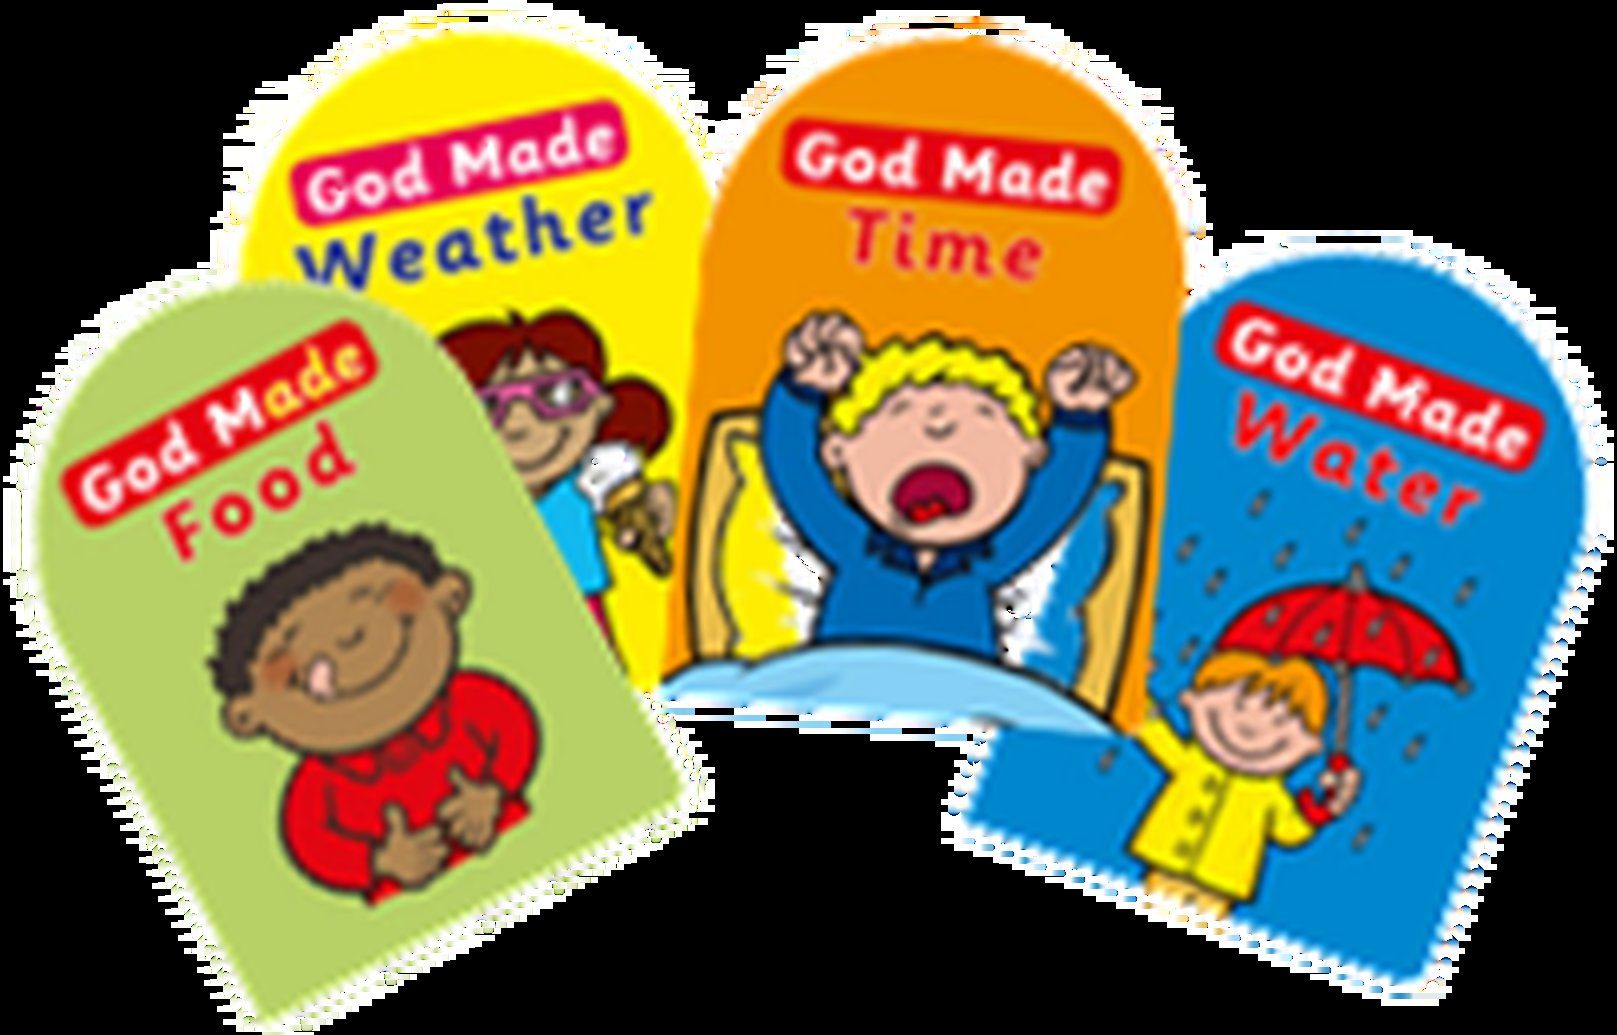 New Release -- God Made Books by Catherine Mackenzie